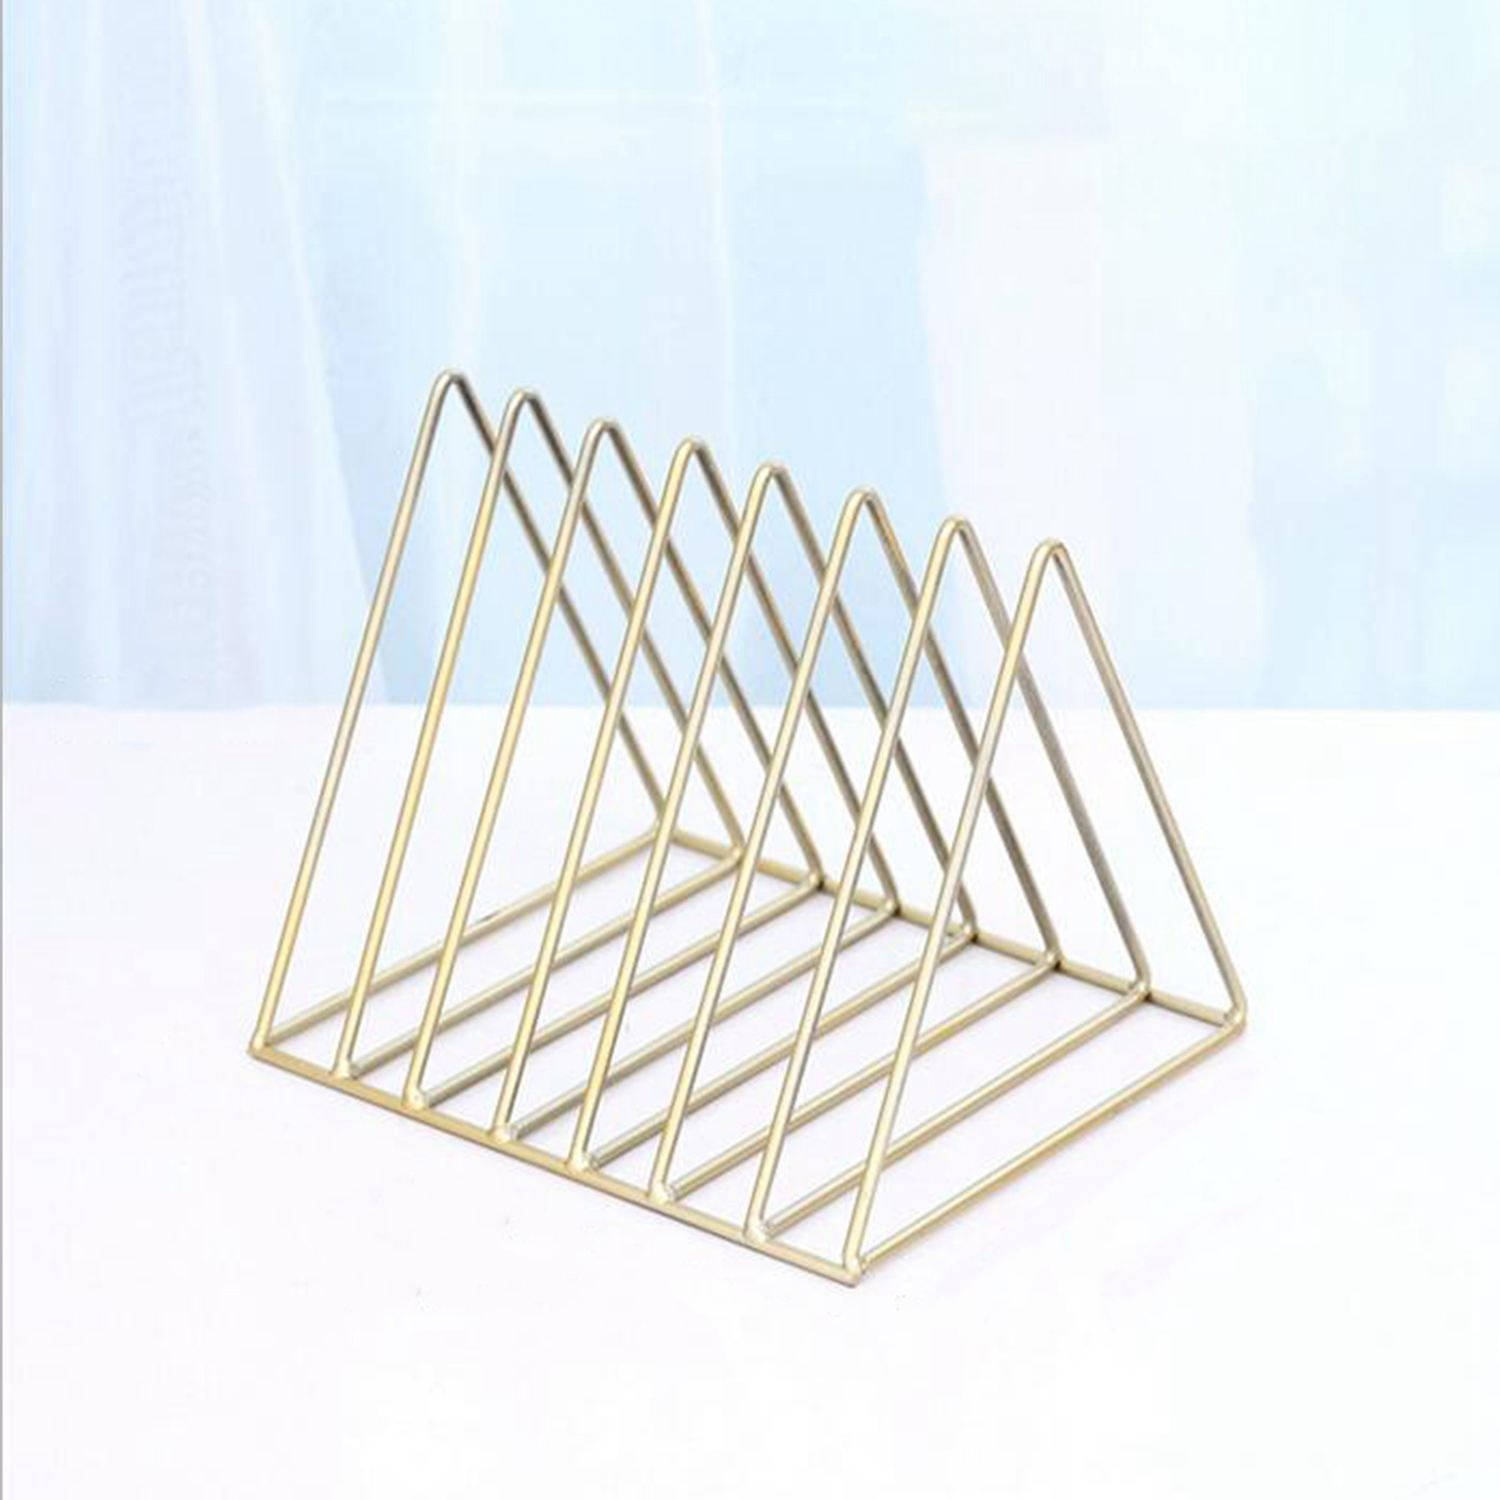 Nordic triangle simple wrought iron shelves desktop storage rack shelf file magazine storage box office rack jewelryNordic triangle simple wrought iron shelves desktop storage rack shelf file magazine storage box office rack jewelry